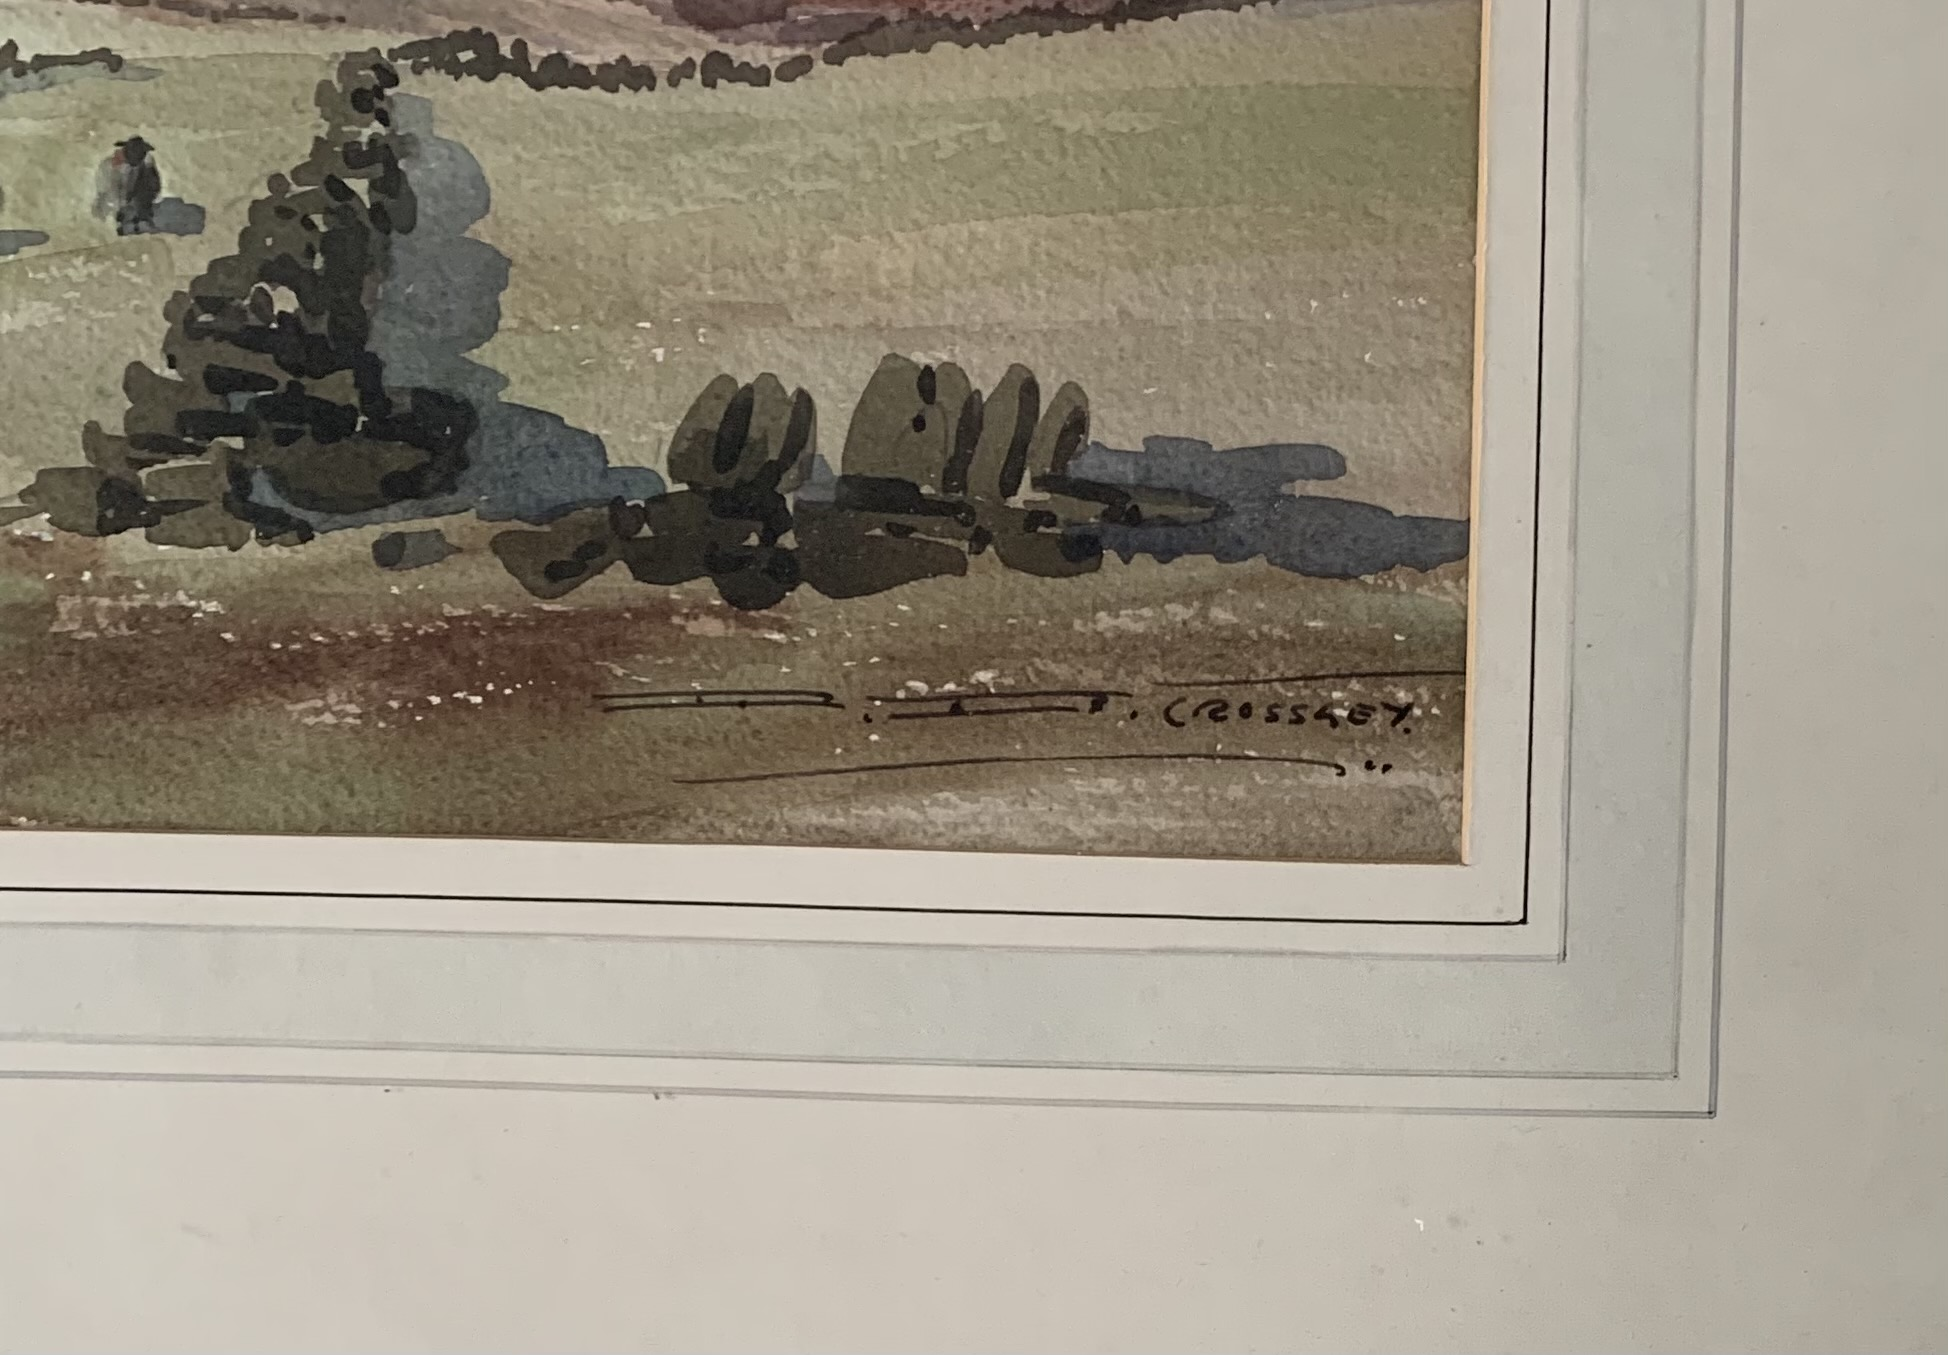 """Watercolour """"In the Bronte Country"""" by D.B. Crossley. Image 22"""" x 15.5"""", frame 32"""" x 25"""" - Image 2 of 3"""